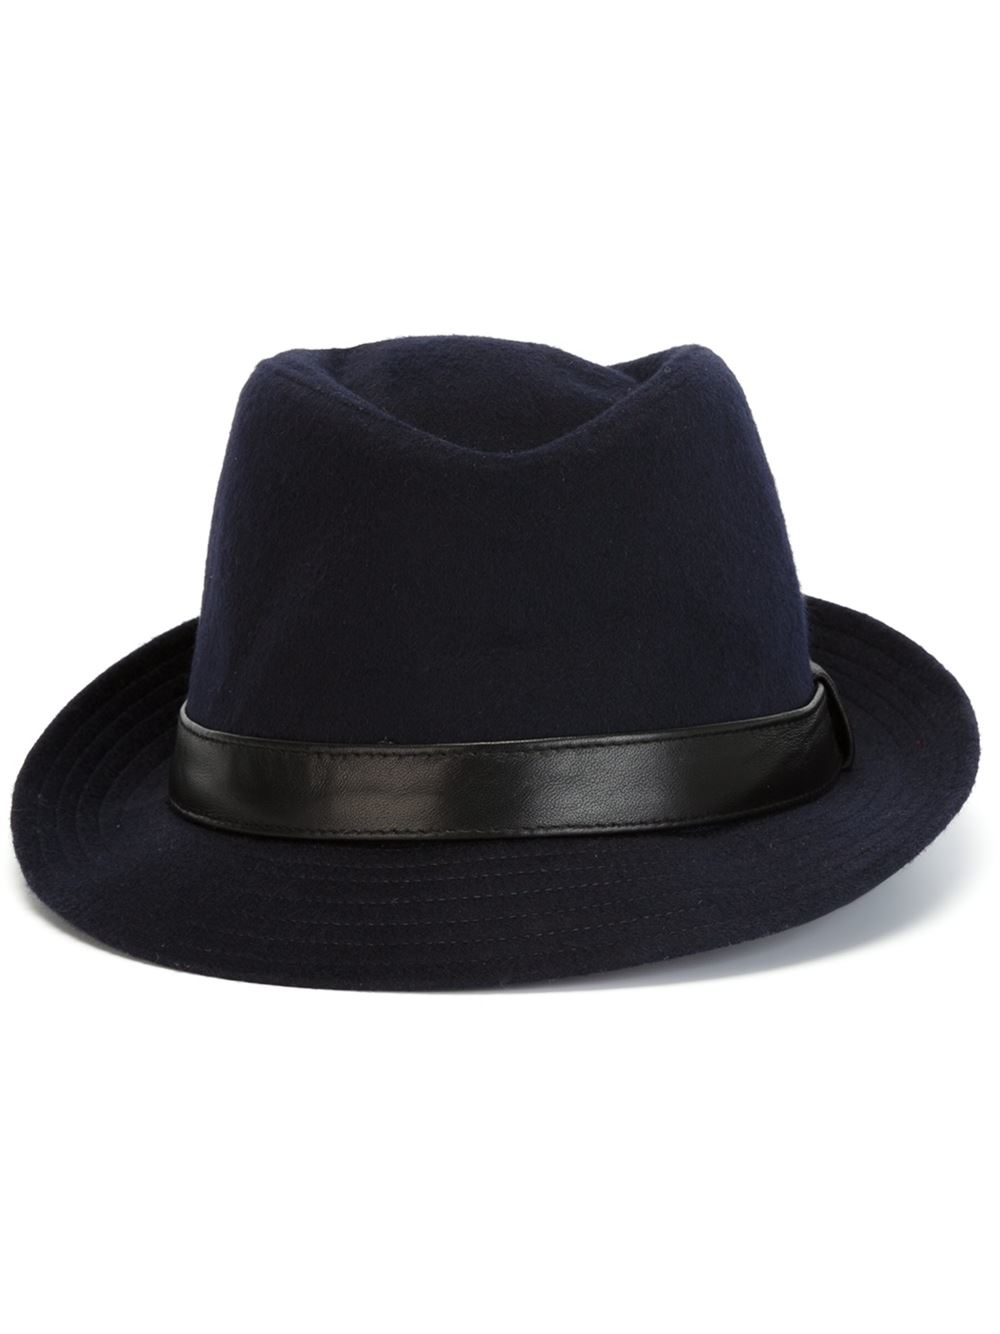 76007210c2f Kiton Leather Band Fedora Hat in Blue for Men - Lyst